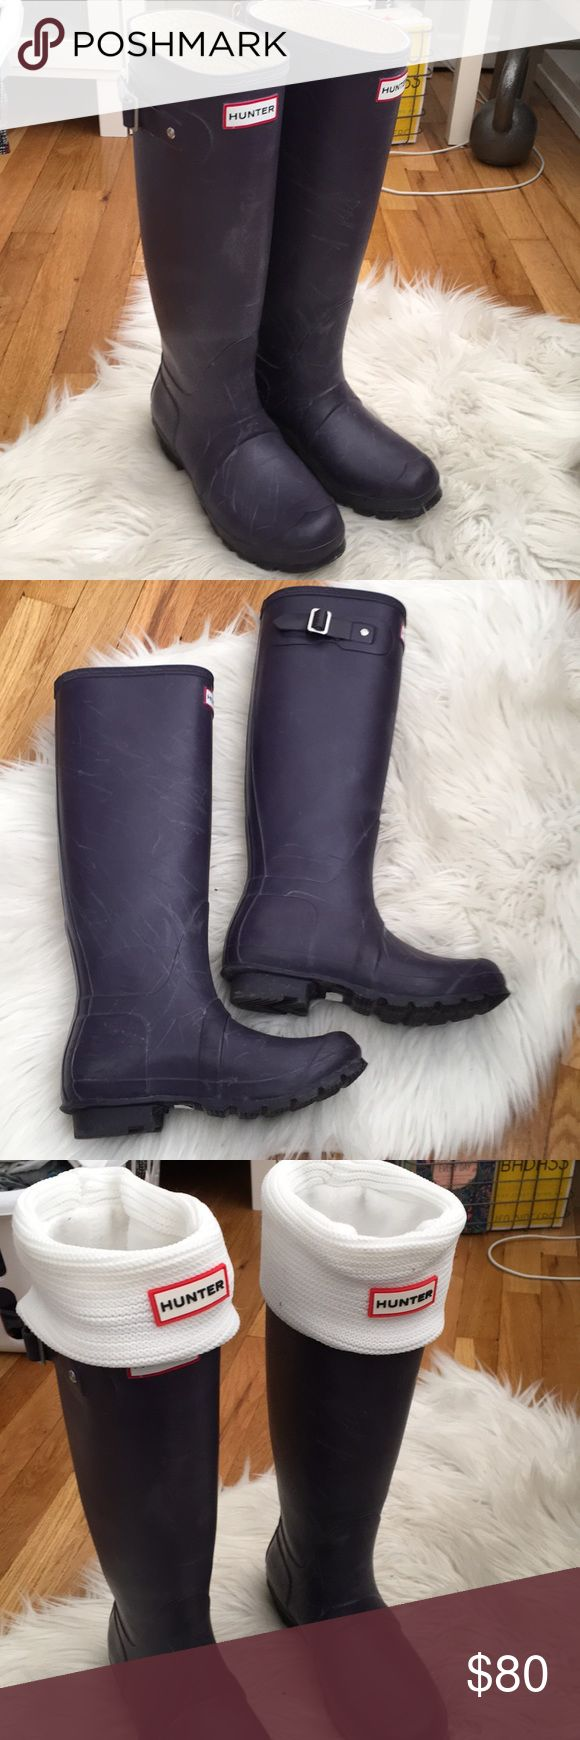 Purple Hunter Boots In great condition! Hardly worn. Still has great tread on the soles. Comes with fleece liners.  ‼️First photo is just for modeling purposes-not the actual item Hunter Boots Shoes Winter & Rain Boots